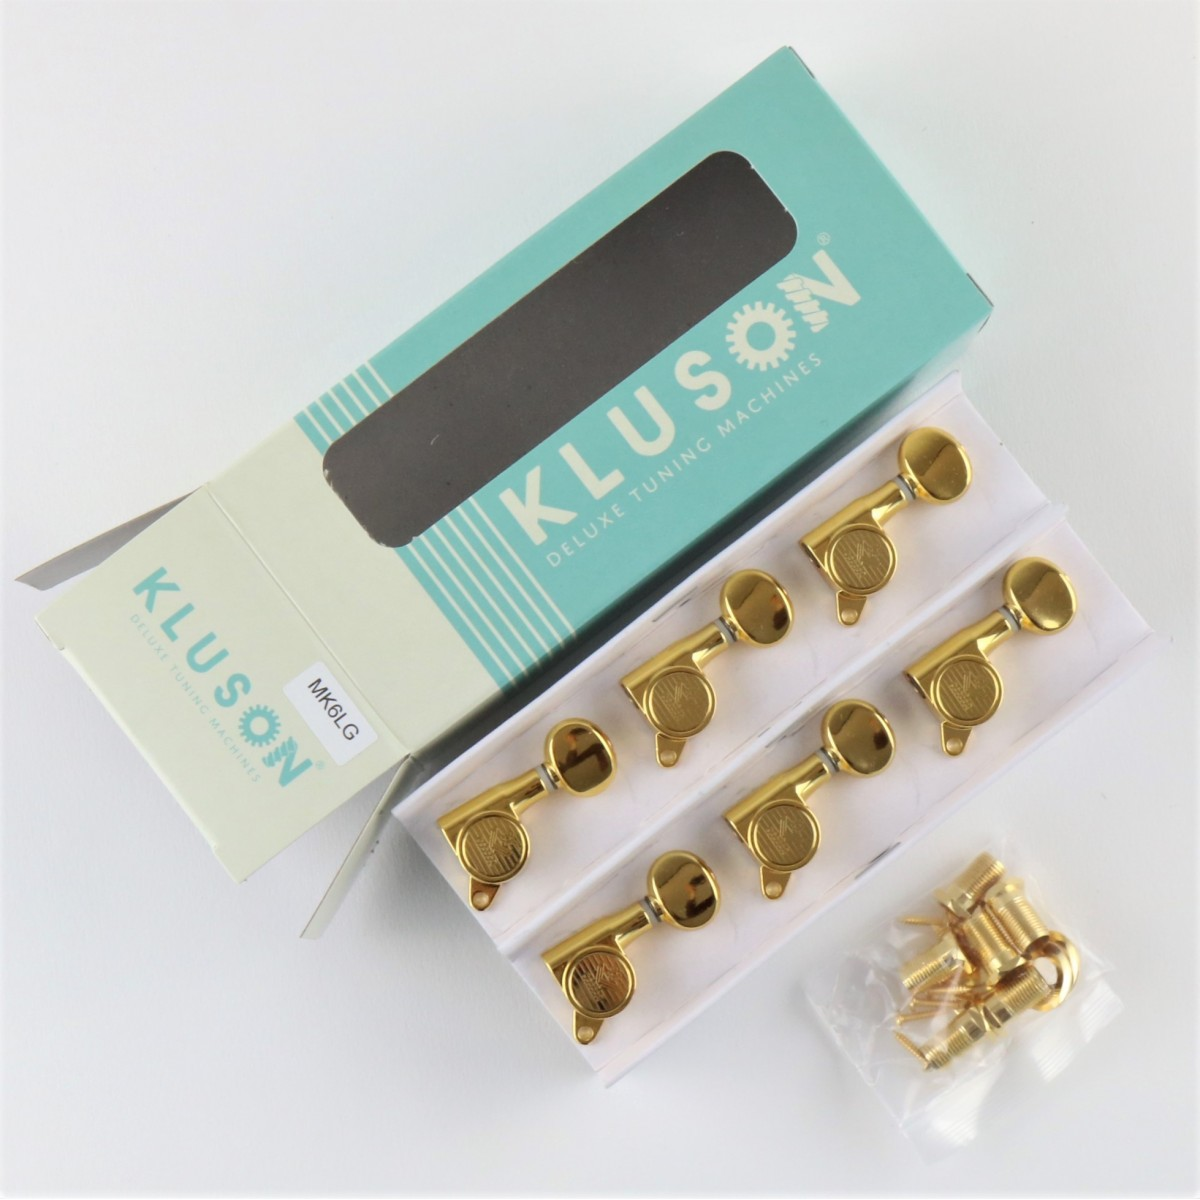 Lollar Imperial® Humbucker Low Wind Nickel Bridge